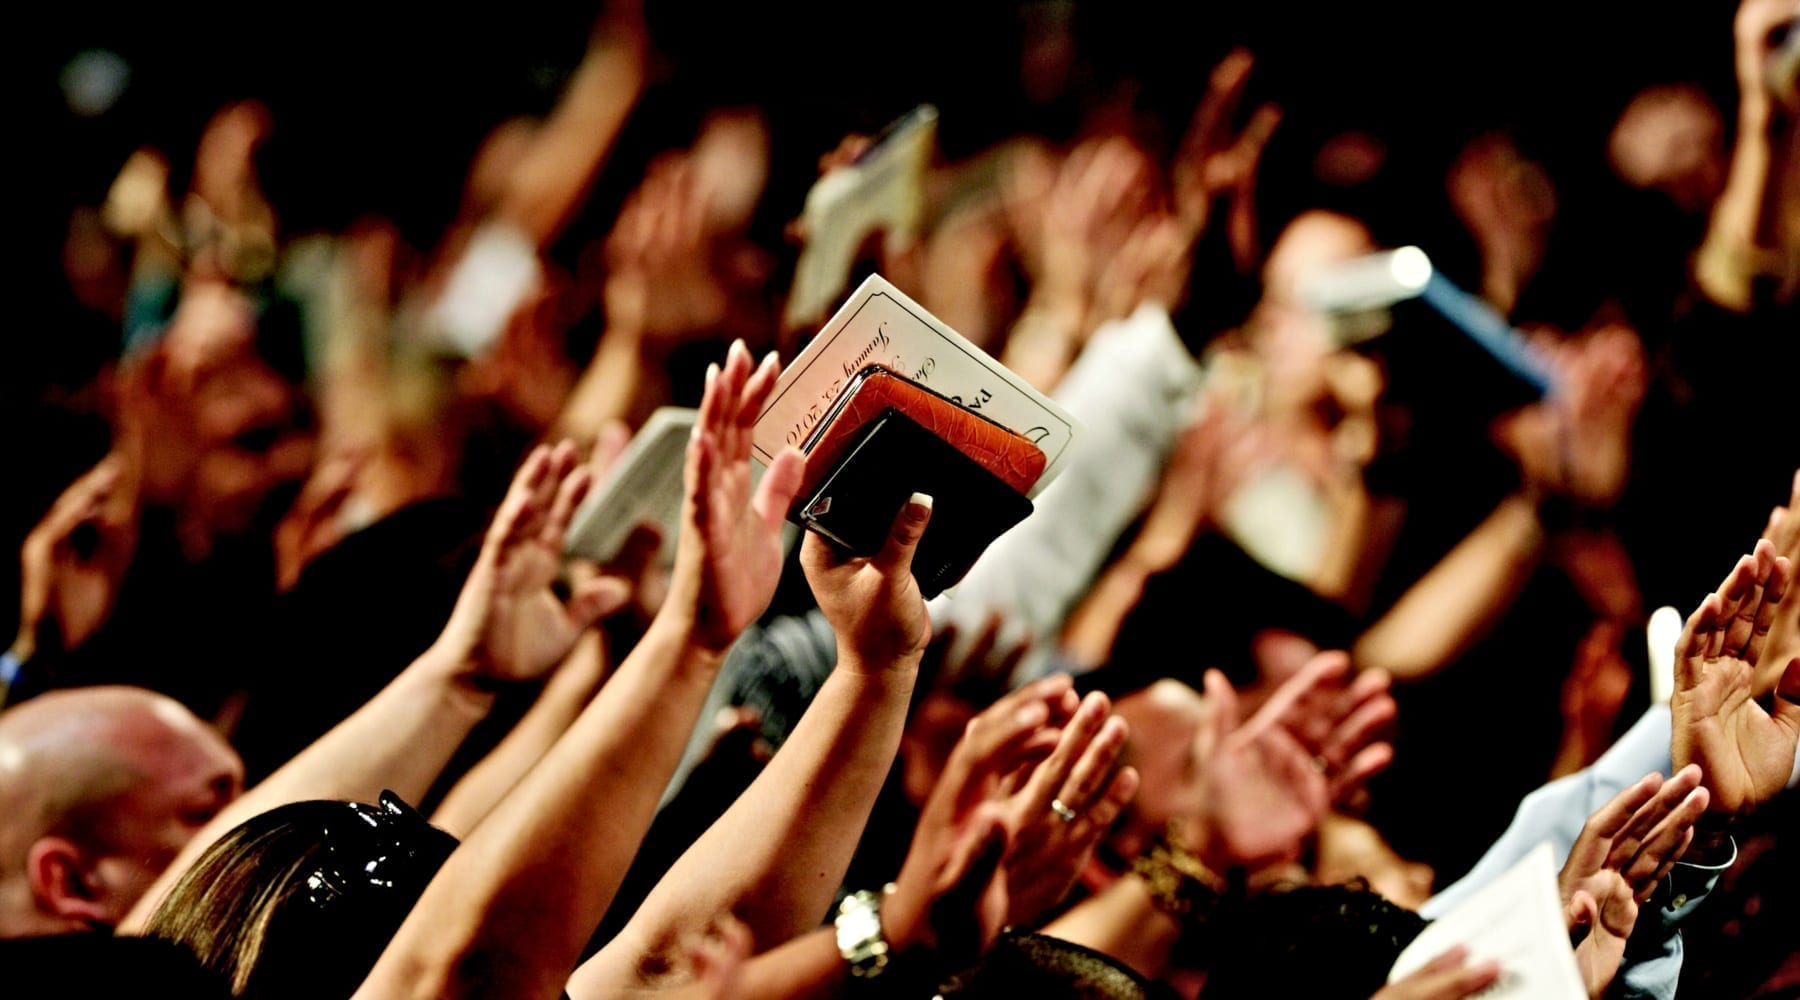 Is It Time for a New Christian Movement?